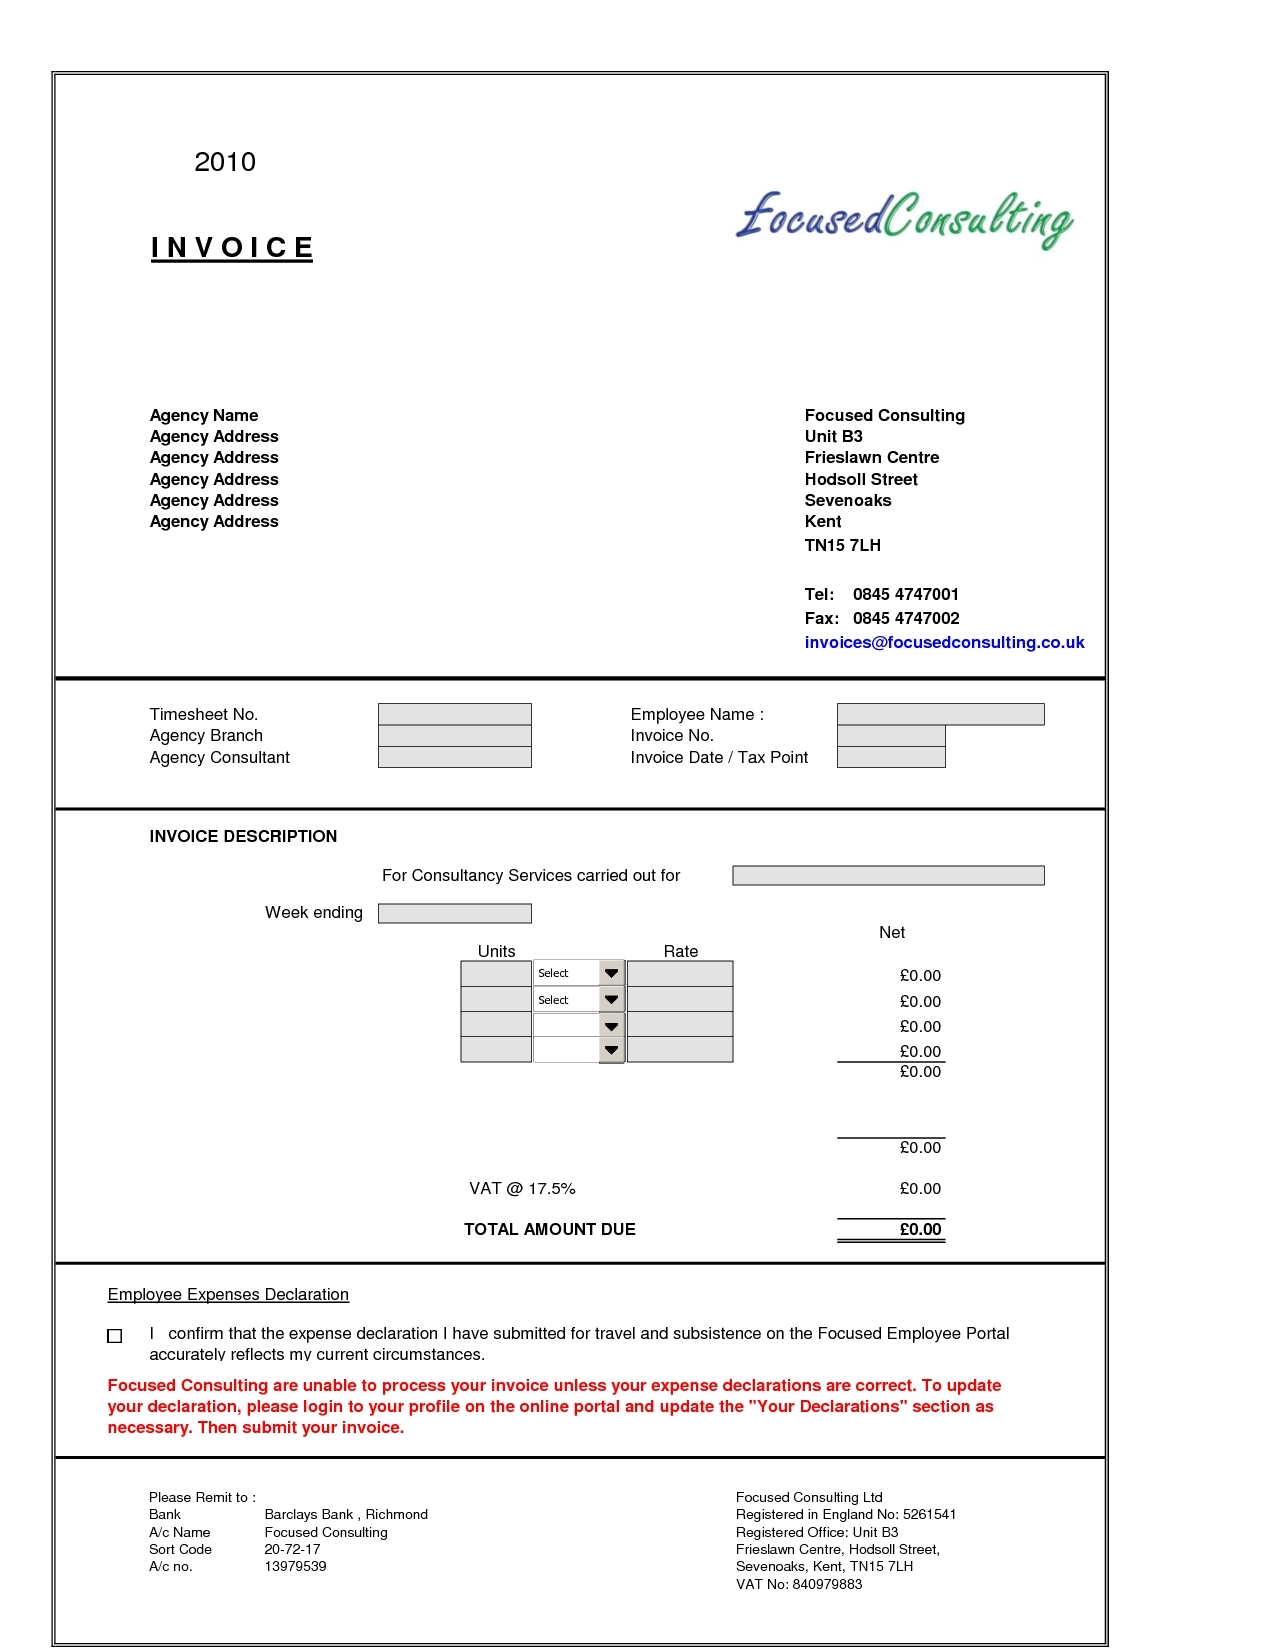 consulting invoice example invoice template free 2016 invoice template for consulting services